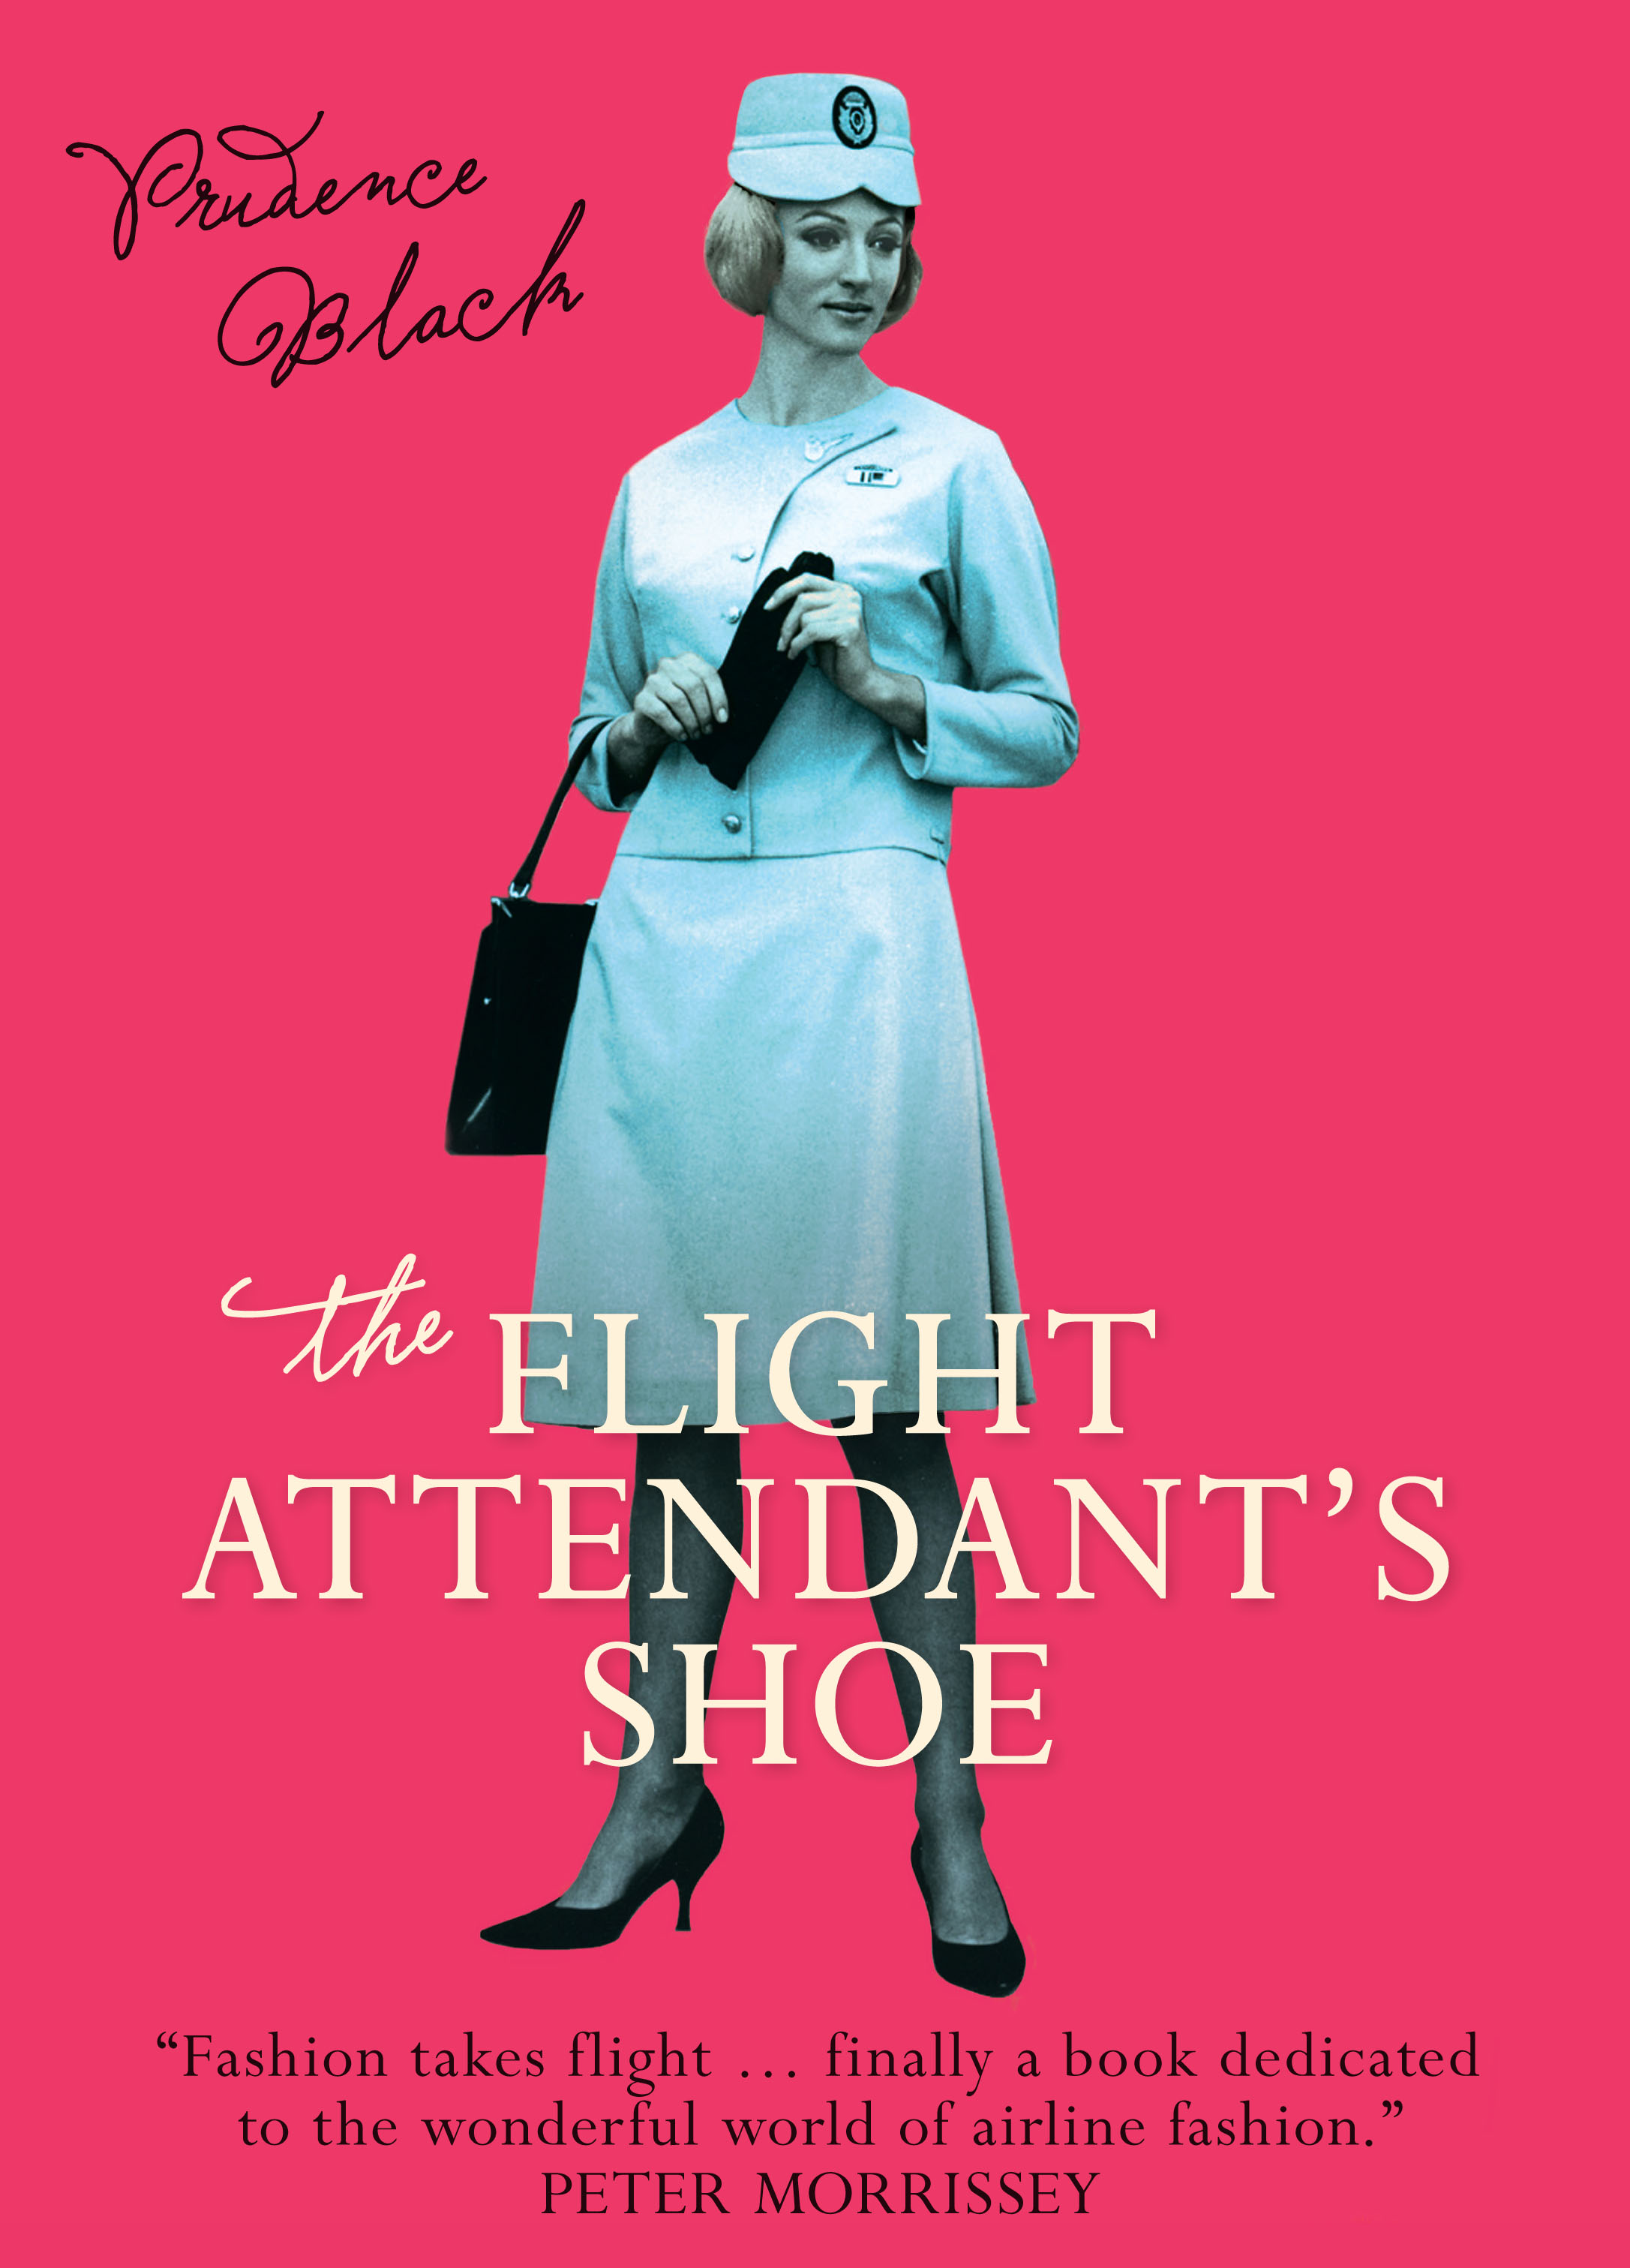 *The Flight Attendant's Shoe*, Prudence Black, NewSouth, designed by Di Quick.